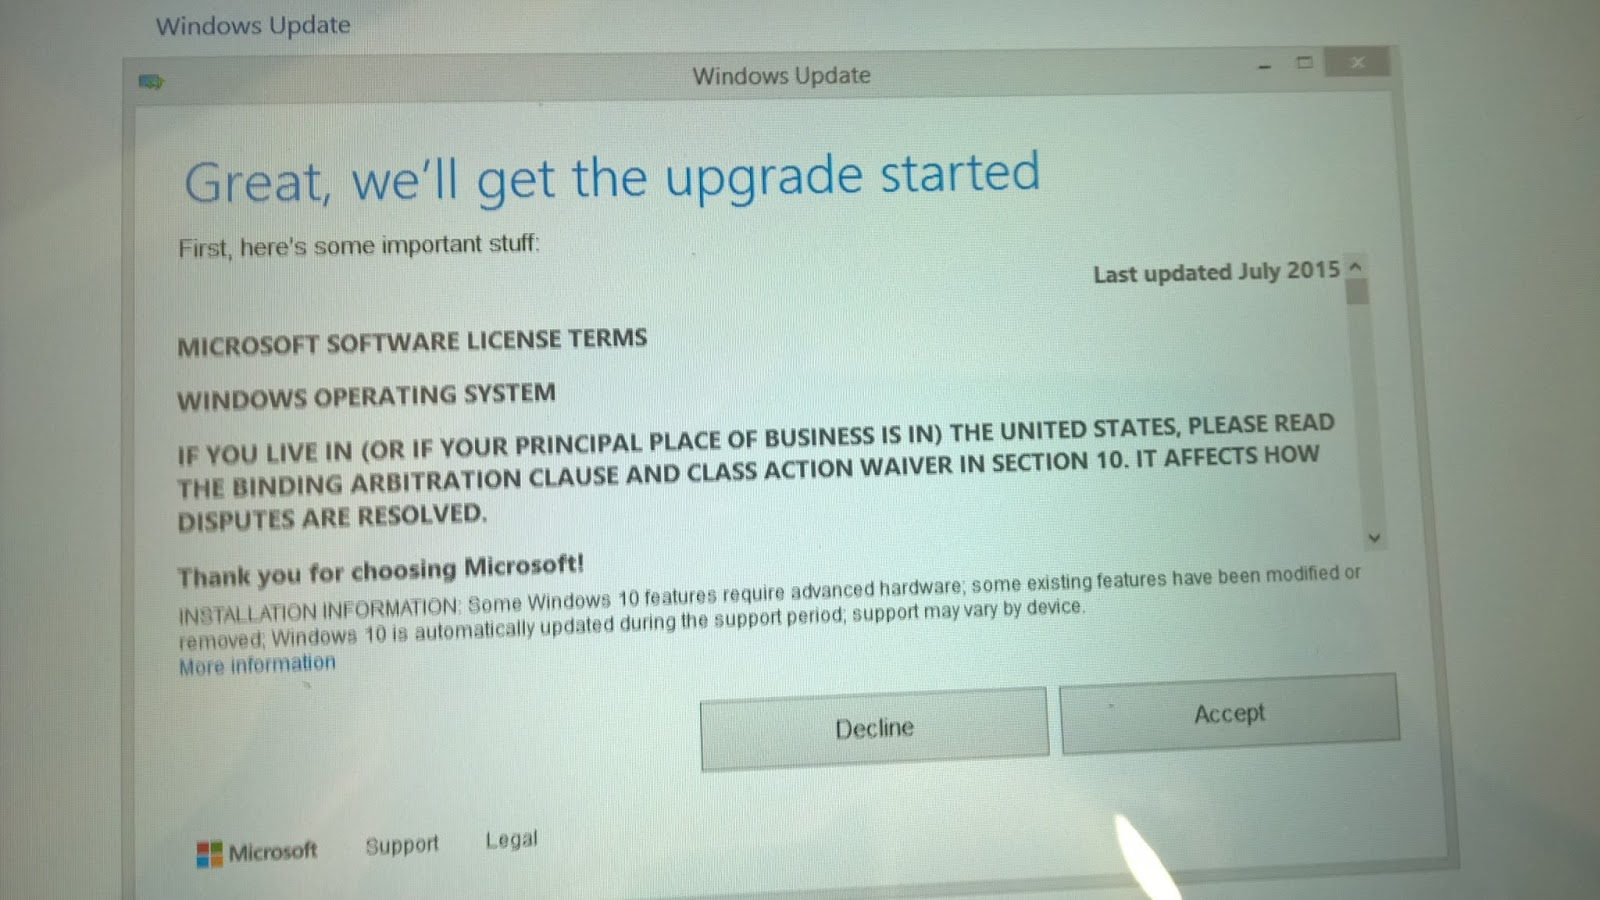 Hodentekhelp how long does it take to install windows 10 on a tablet